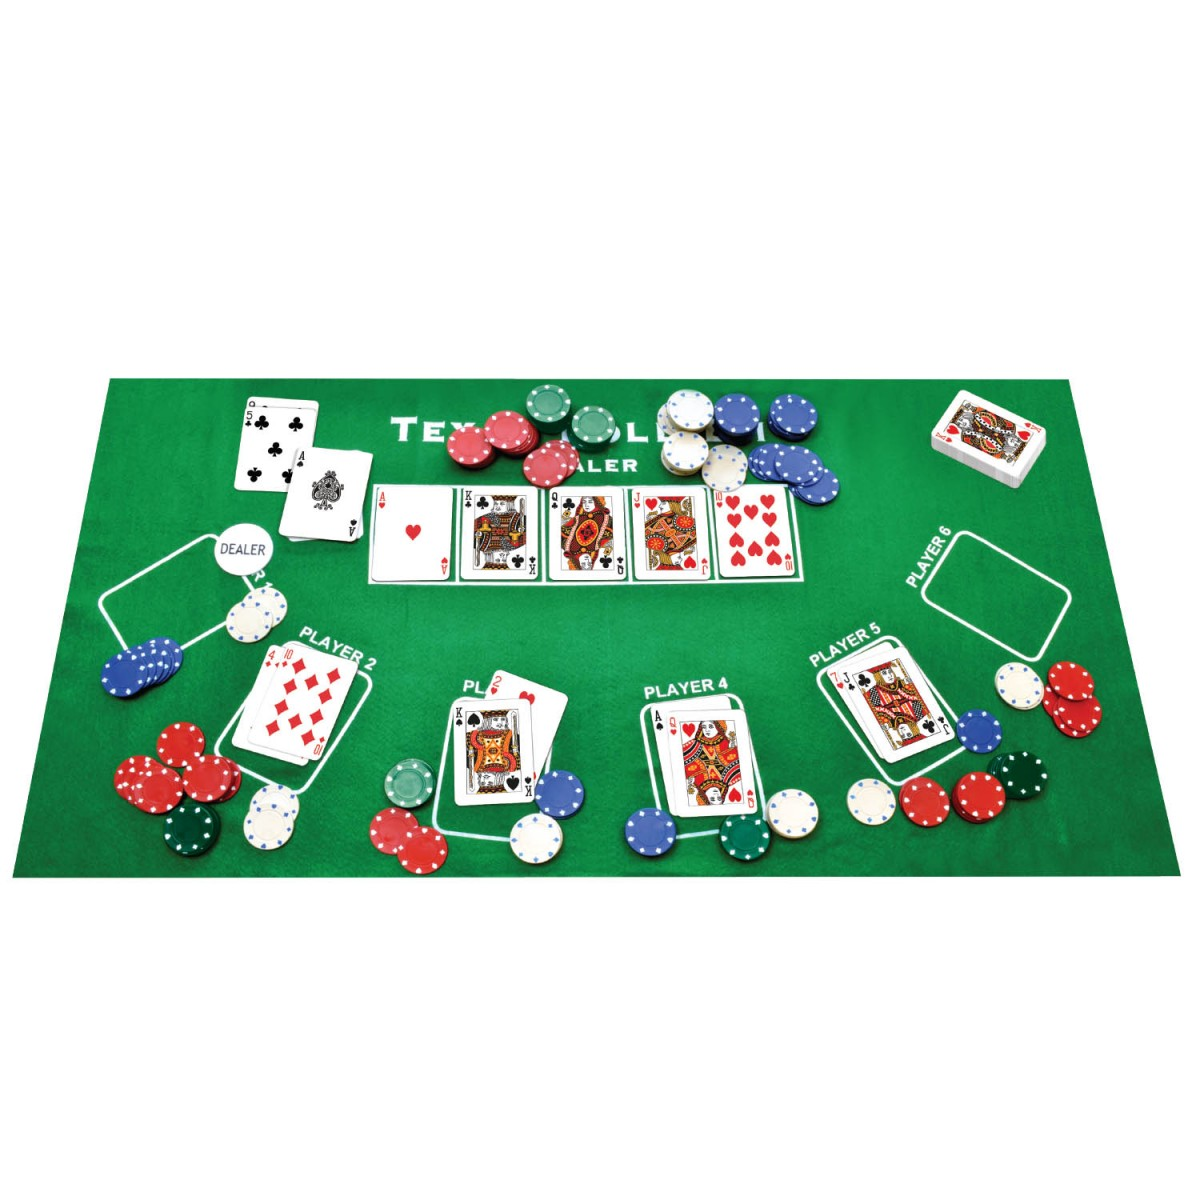 Poker tracker 4 tournaments